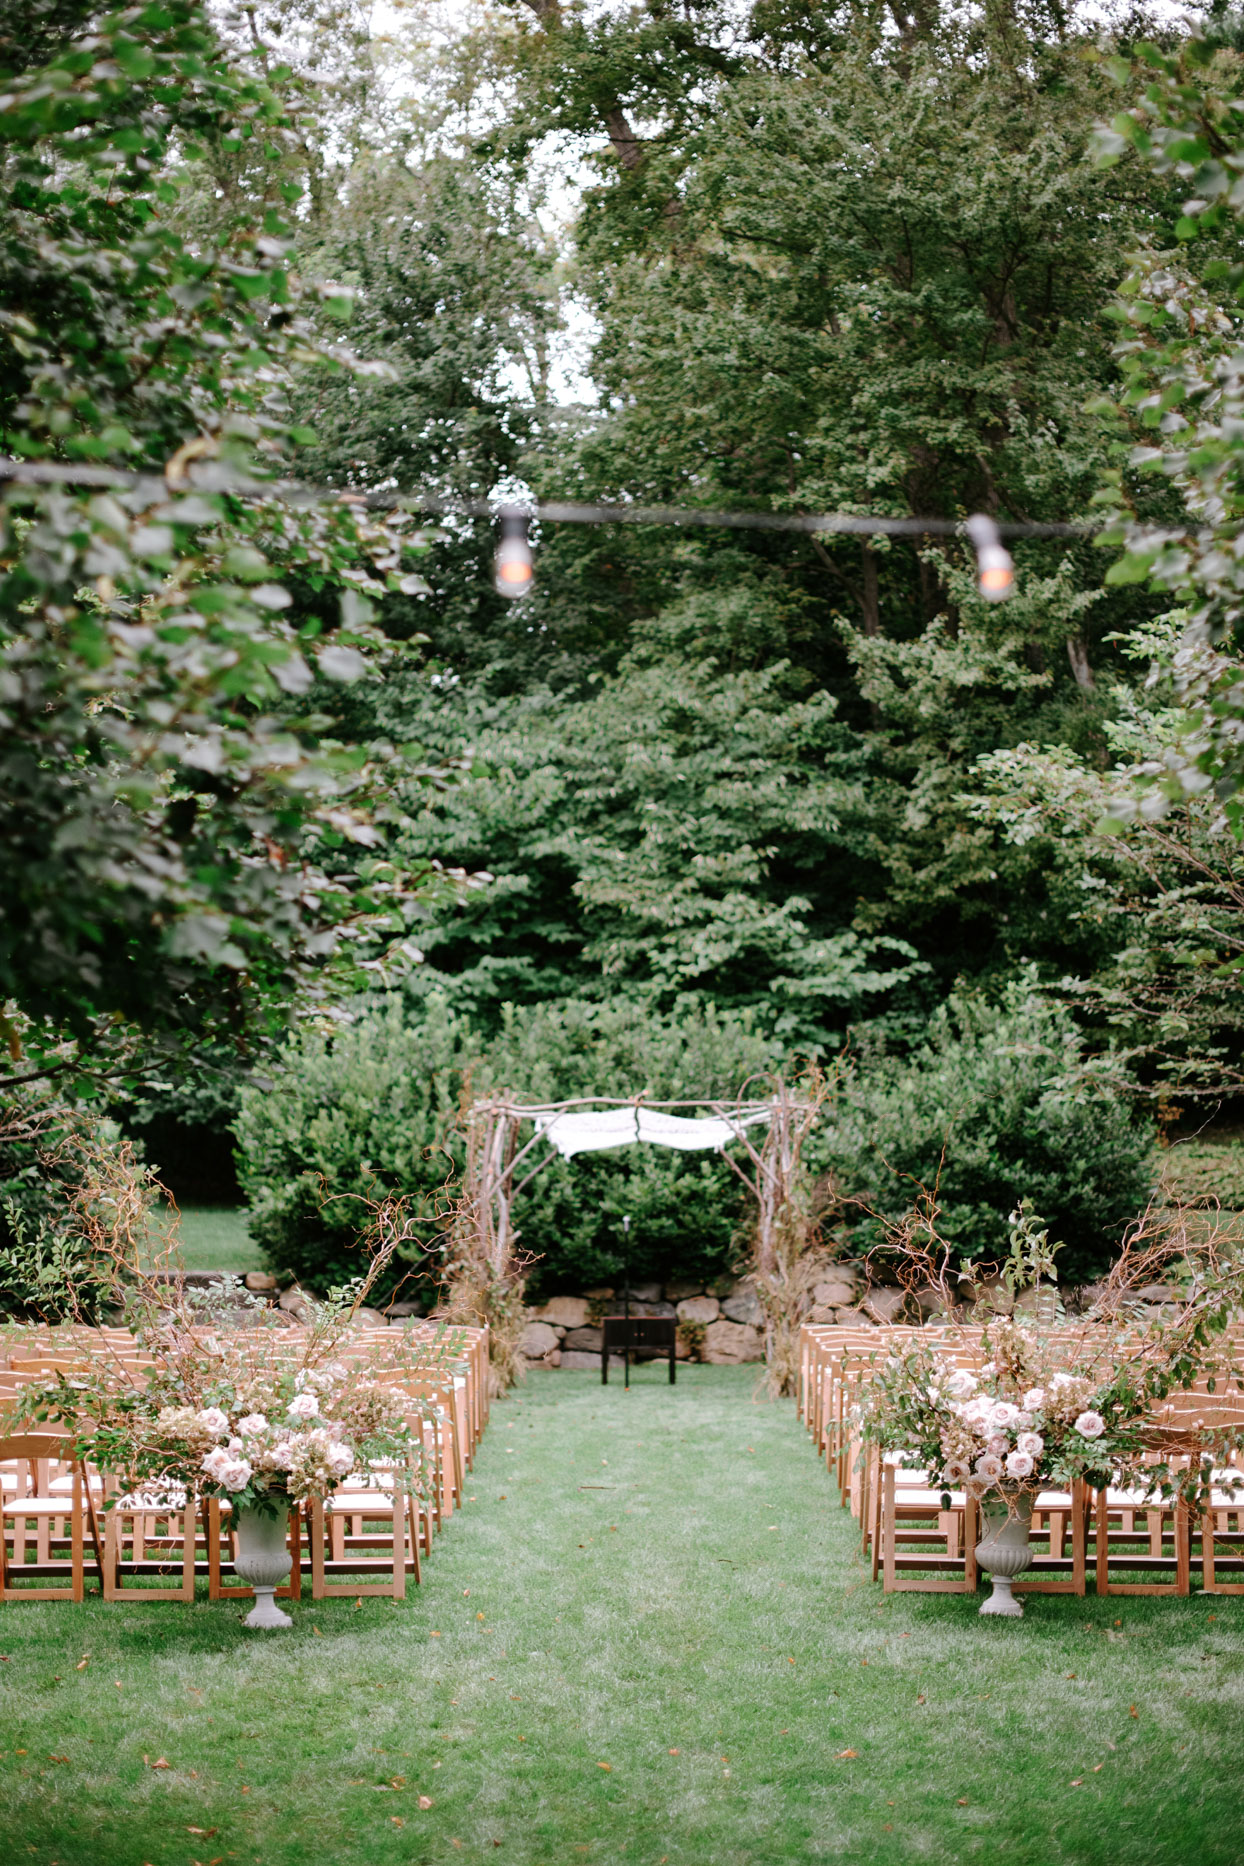 outdoor ceremony set up with wooden chairs and chuppah